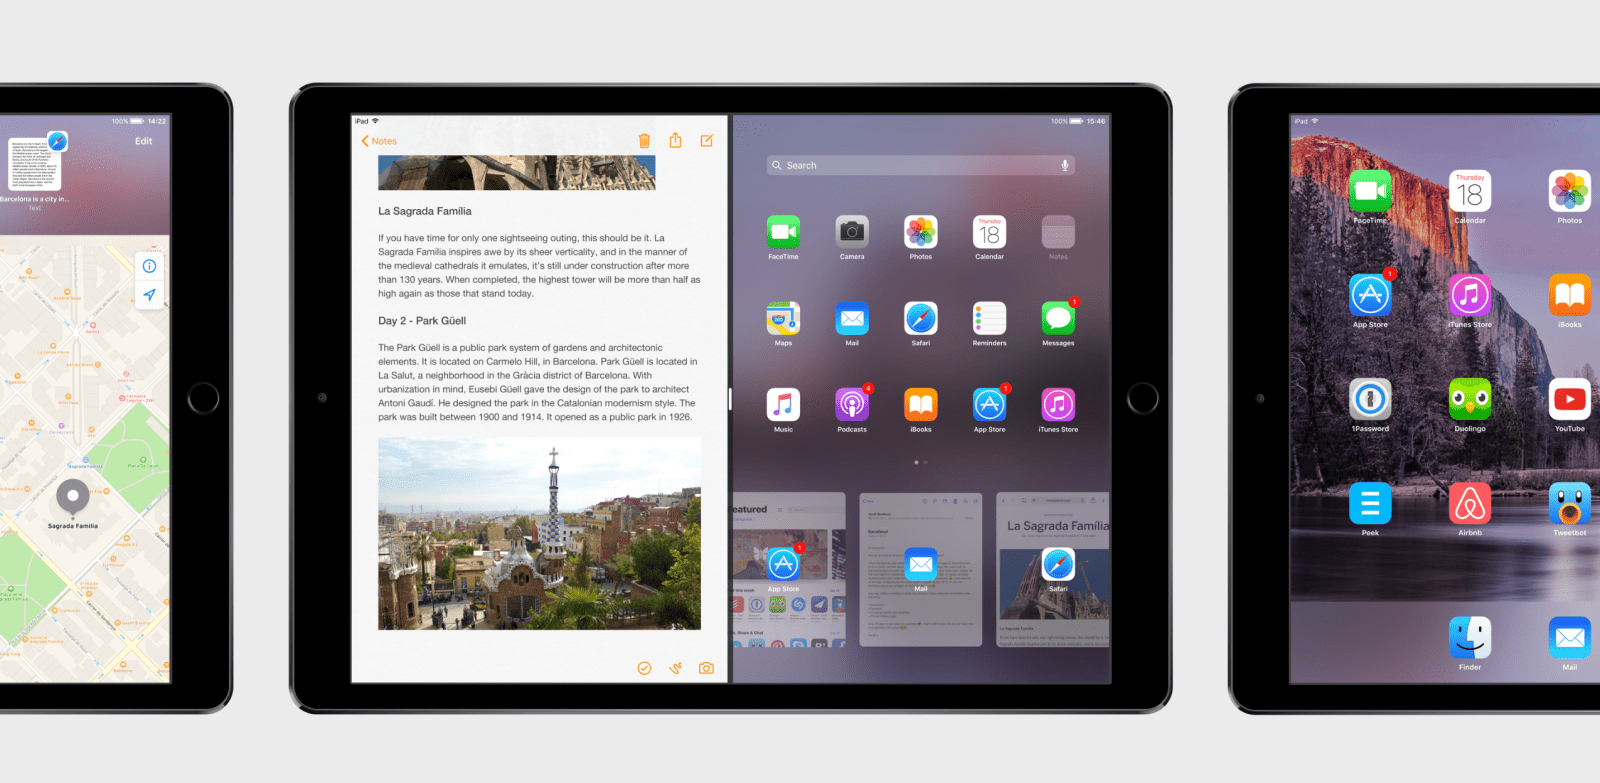 iOS 11 concept imagines new productivity features, Finder app, and more for iPad users [Video]